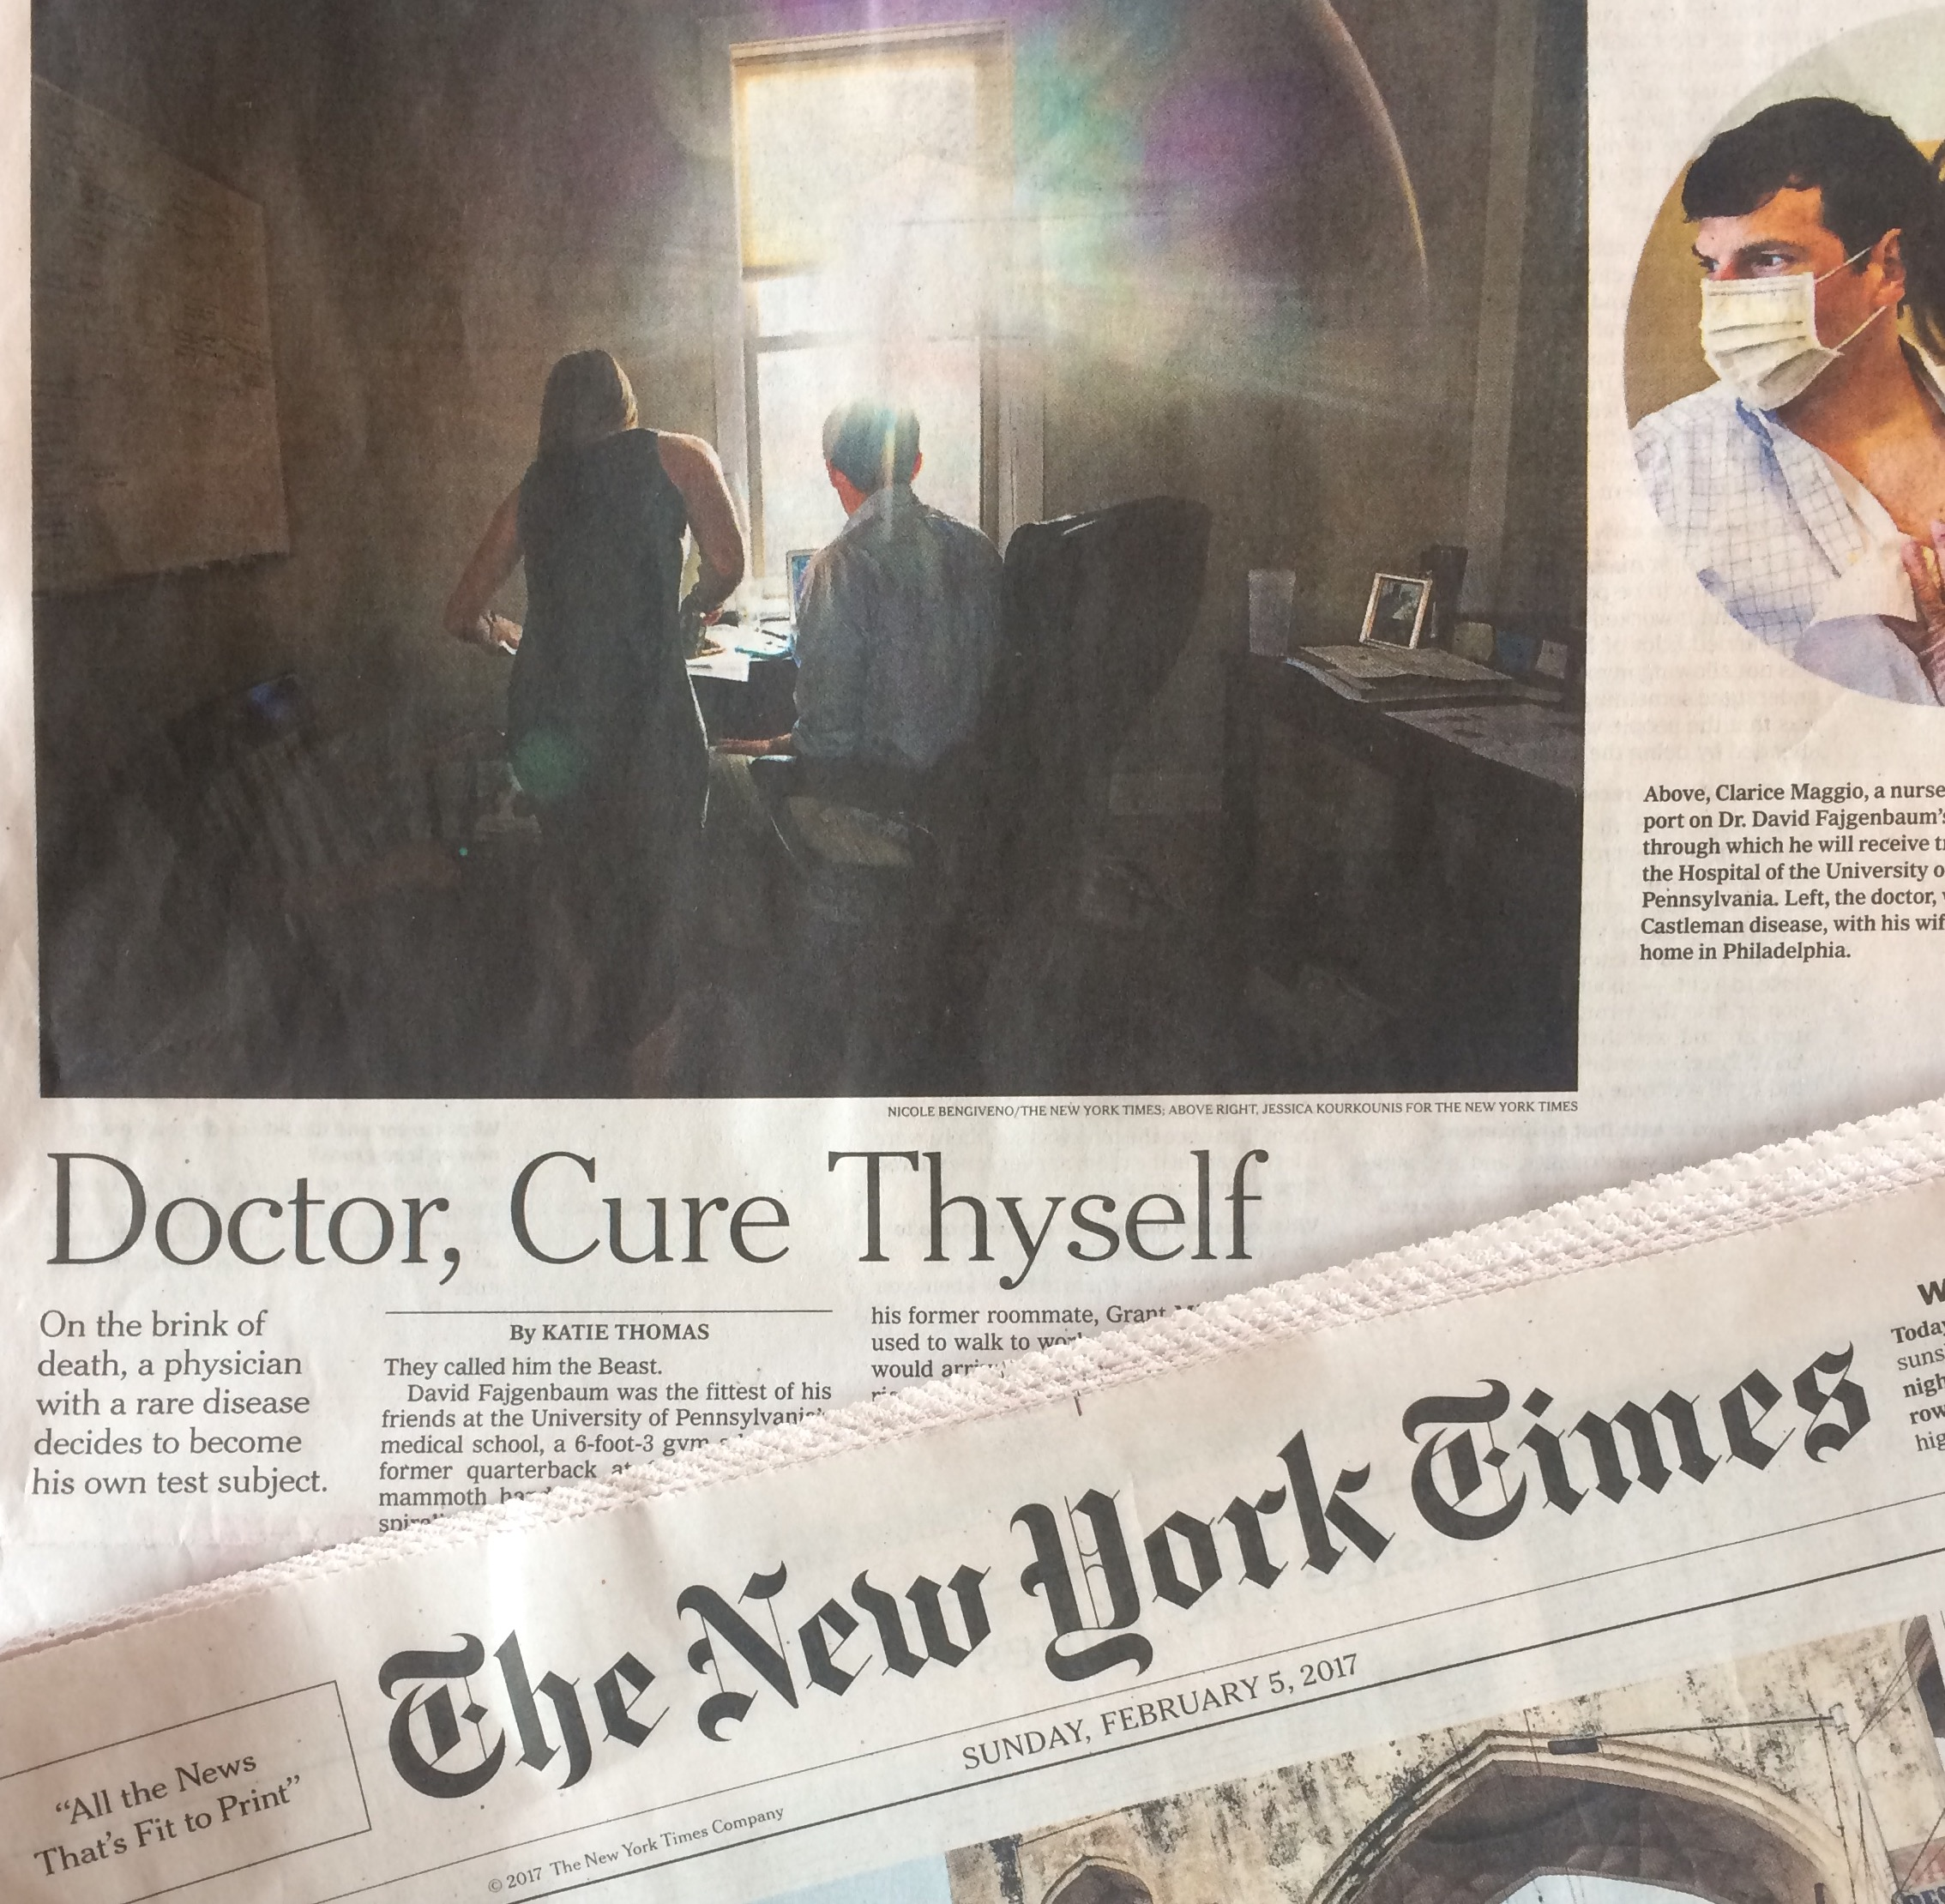 New York Times Sunday Business story on Feb. 5, 2017: Doctor, Cure Thyself